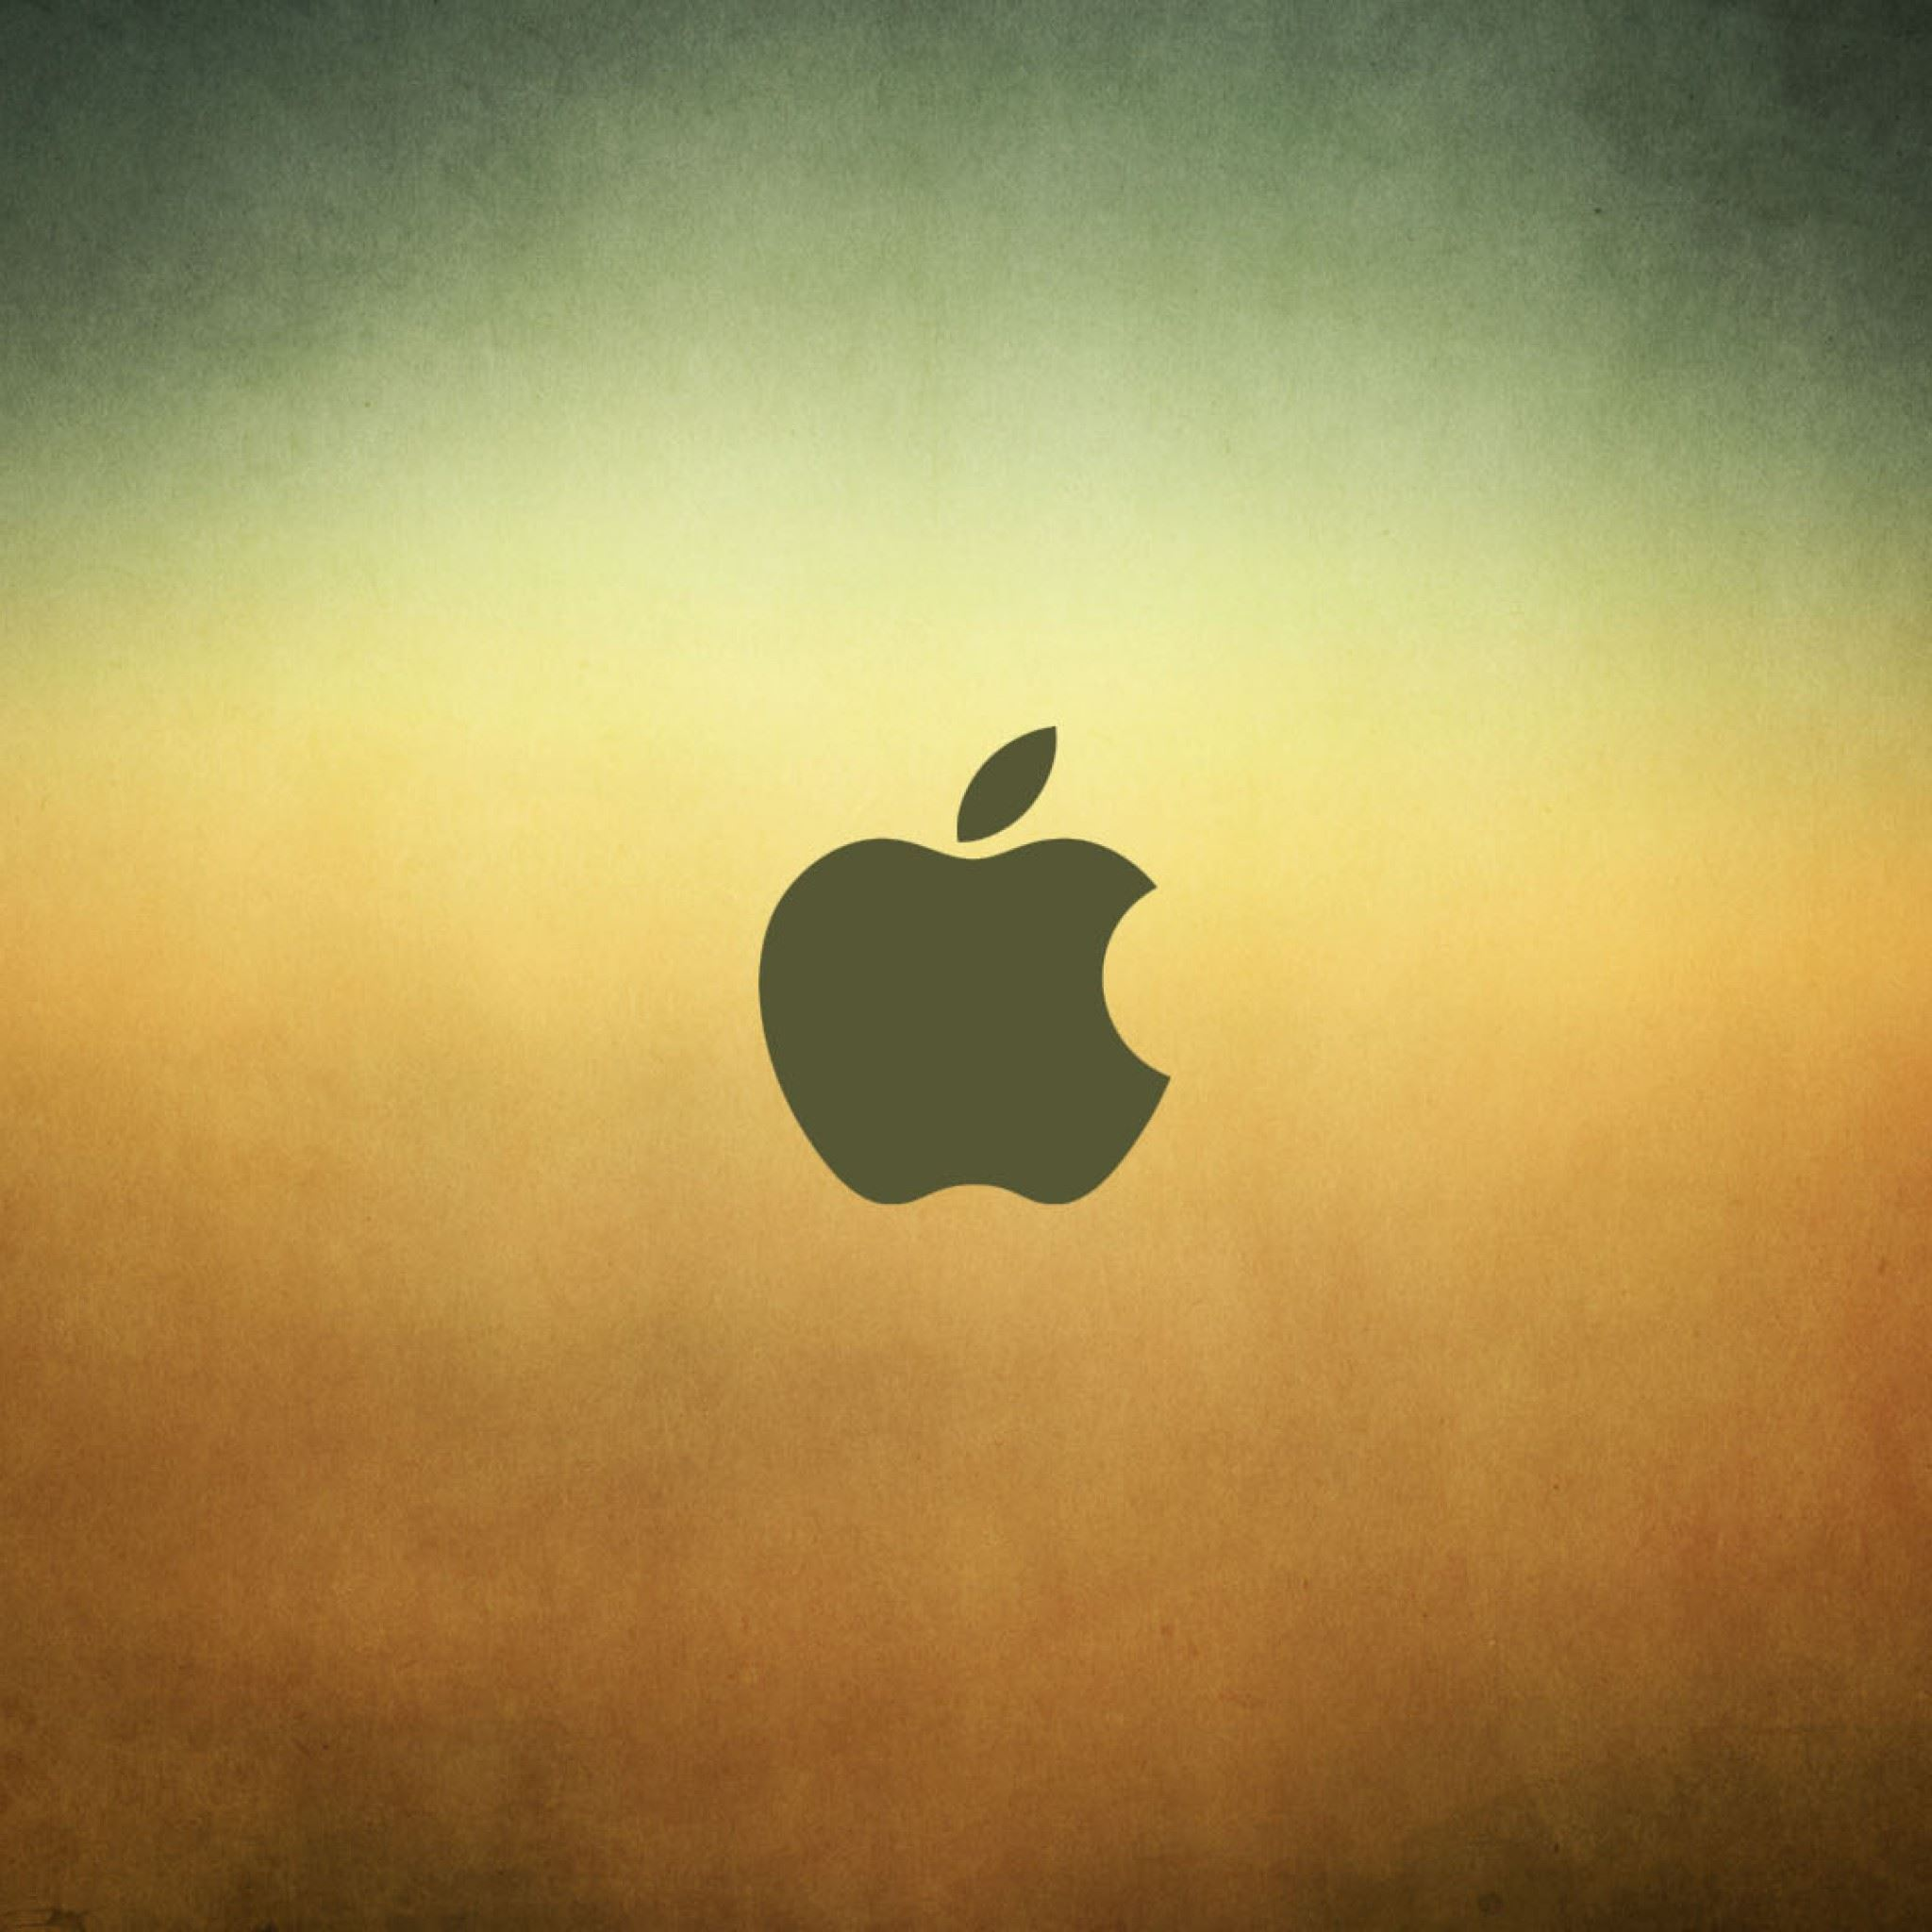 Apple Hd iPad Air wallpaper